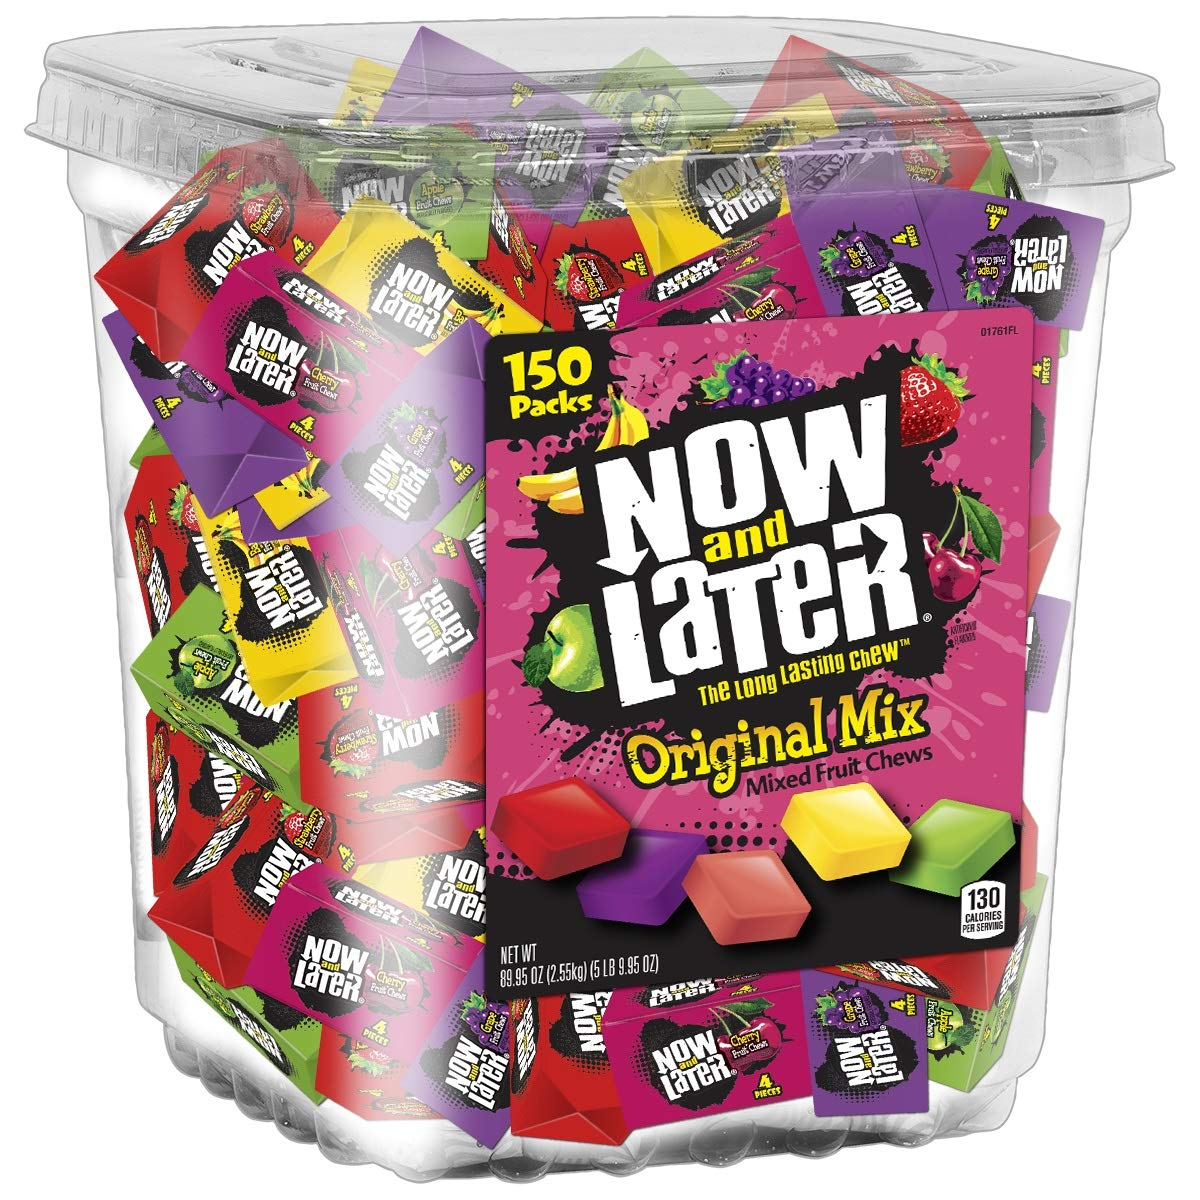 Now & Later Original Taffy Chews Candy, Assorted, 150 Count Chews, 90 Ounce Jar (Pack of 3) by Now and Later